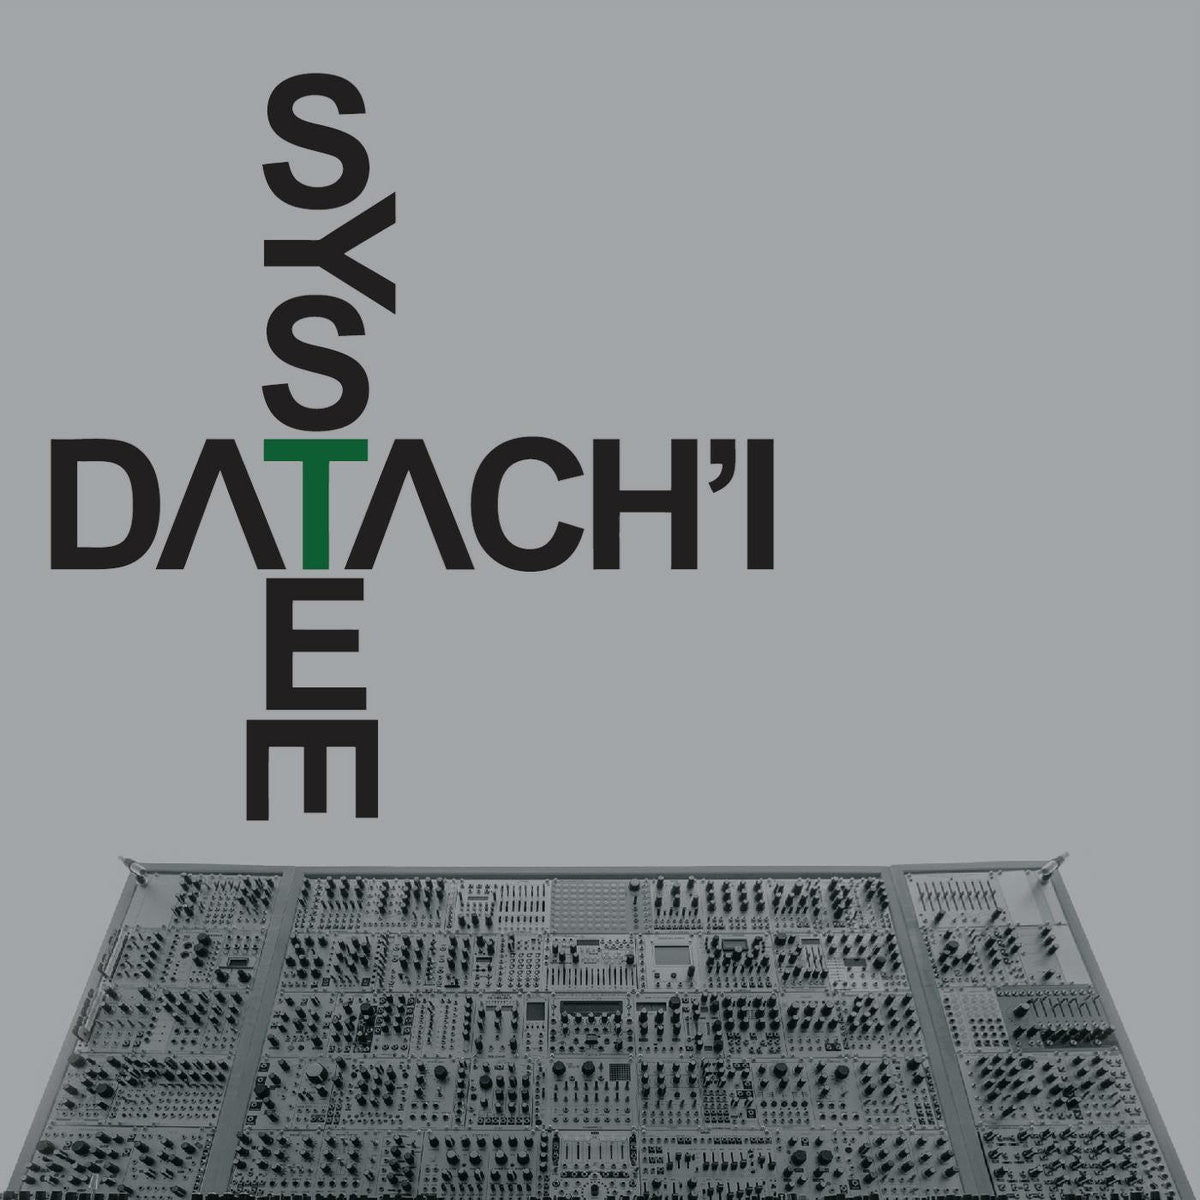 Datach'I – System [CD Edition] , CD - Timesig, Unearthed Sounds